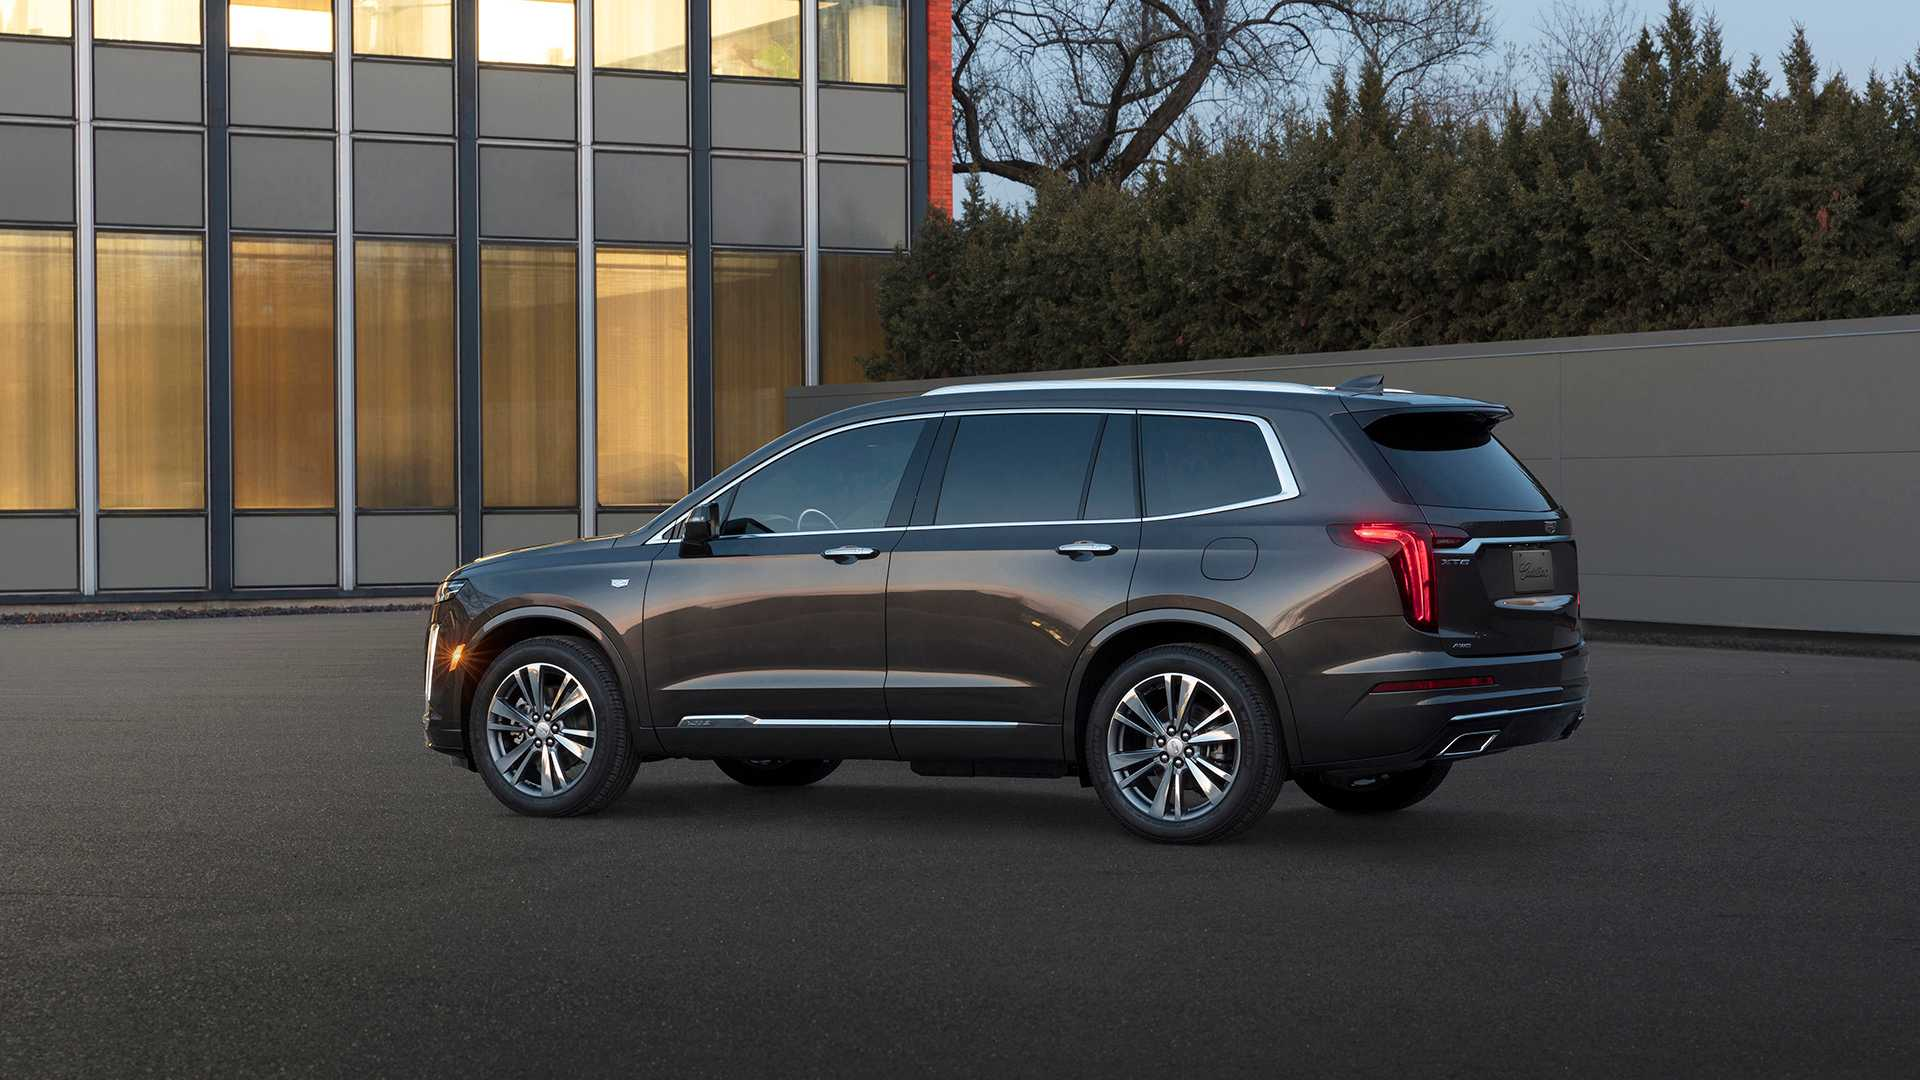 2020 Cadillac XT6 Revealed Ahead Of World Debut At NAIAS ...